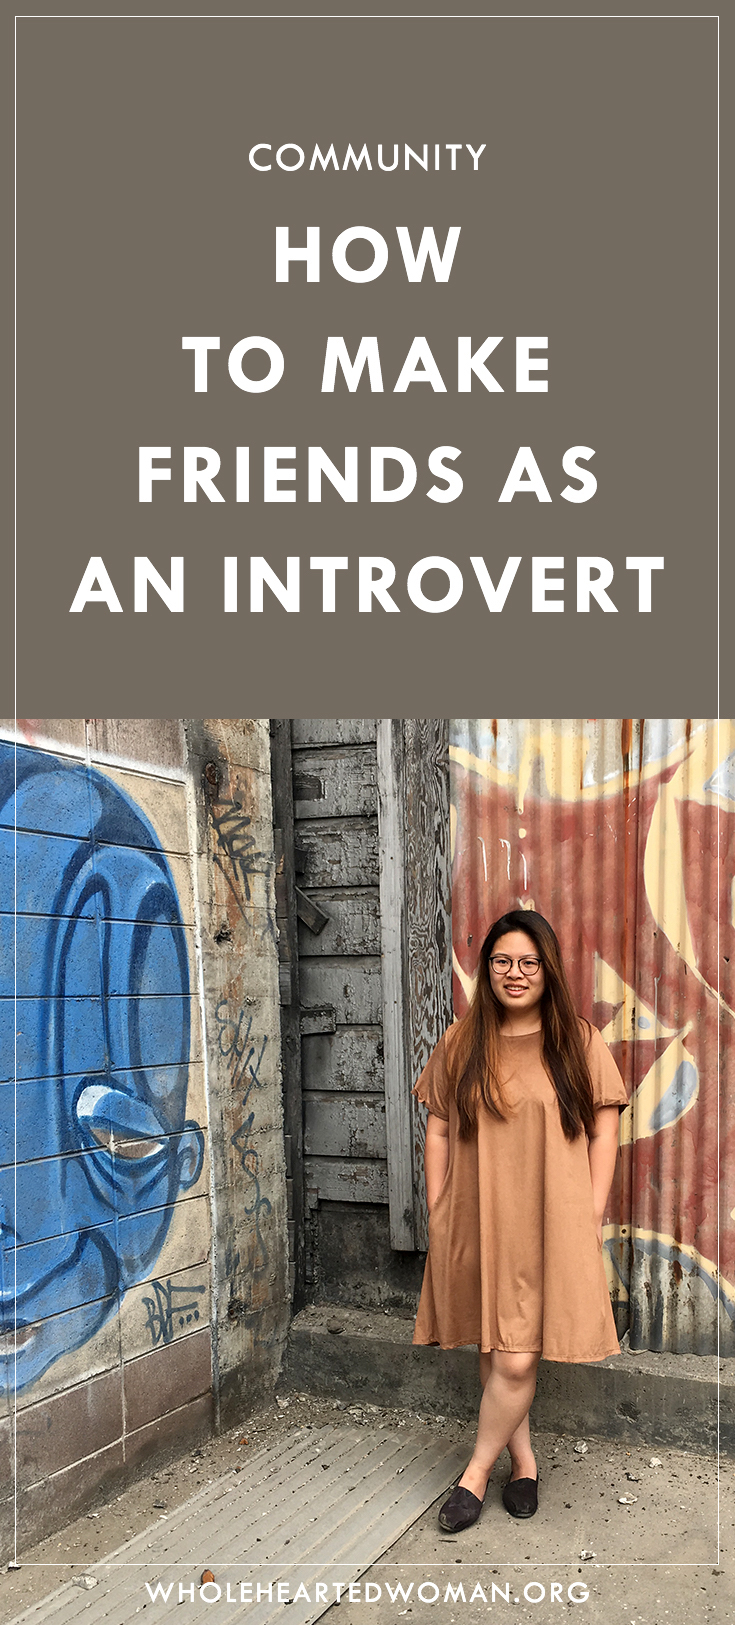 6 Tips For Finding Deeper Connection Online For Introverts   How To Make Friends As An Introvert   Finding Friends Online   Building A Community   How To Find My Soul Tribe   Community   Female Empowerment   Life Advice   Advice for Introverts   How Make Friends Online   Making Friends Online As An Introvert   How To Find People To Be Friends With Online   Being An Introvert Online